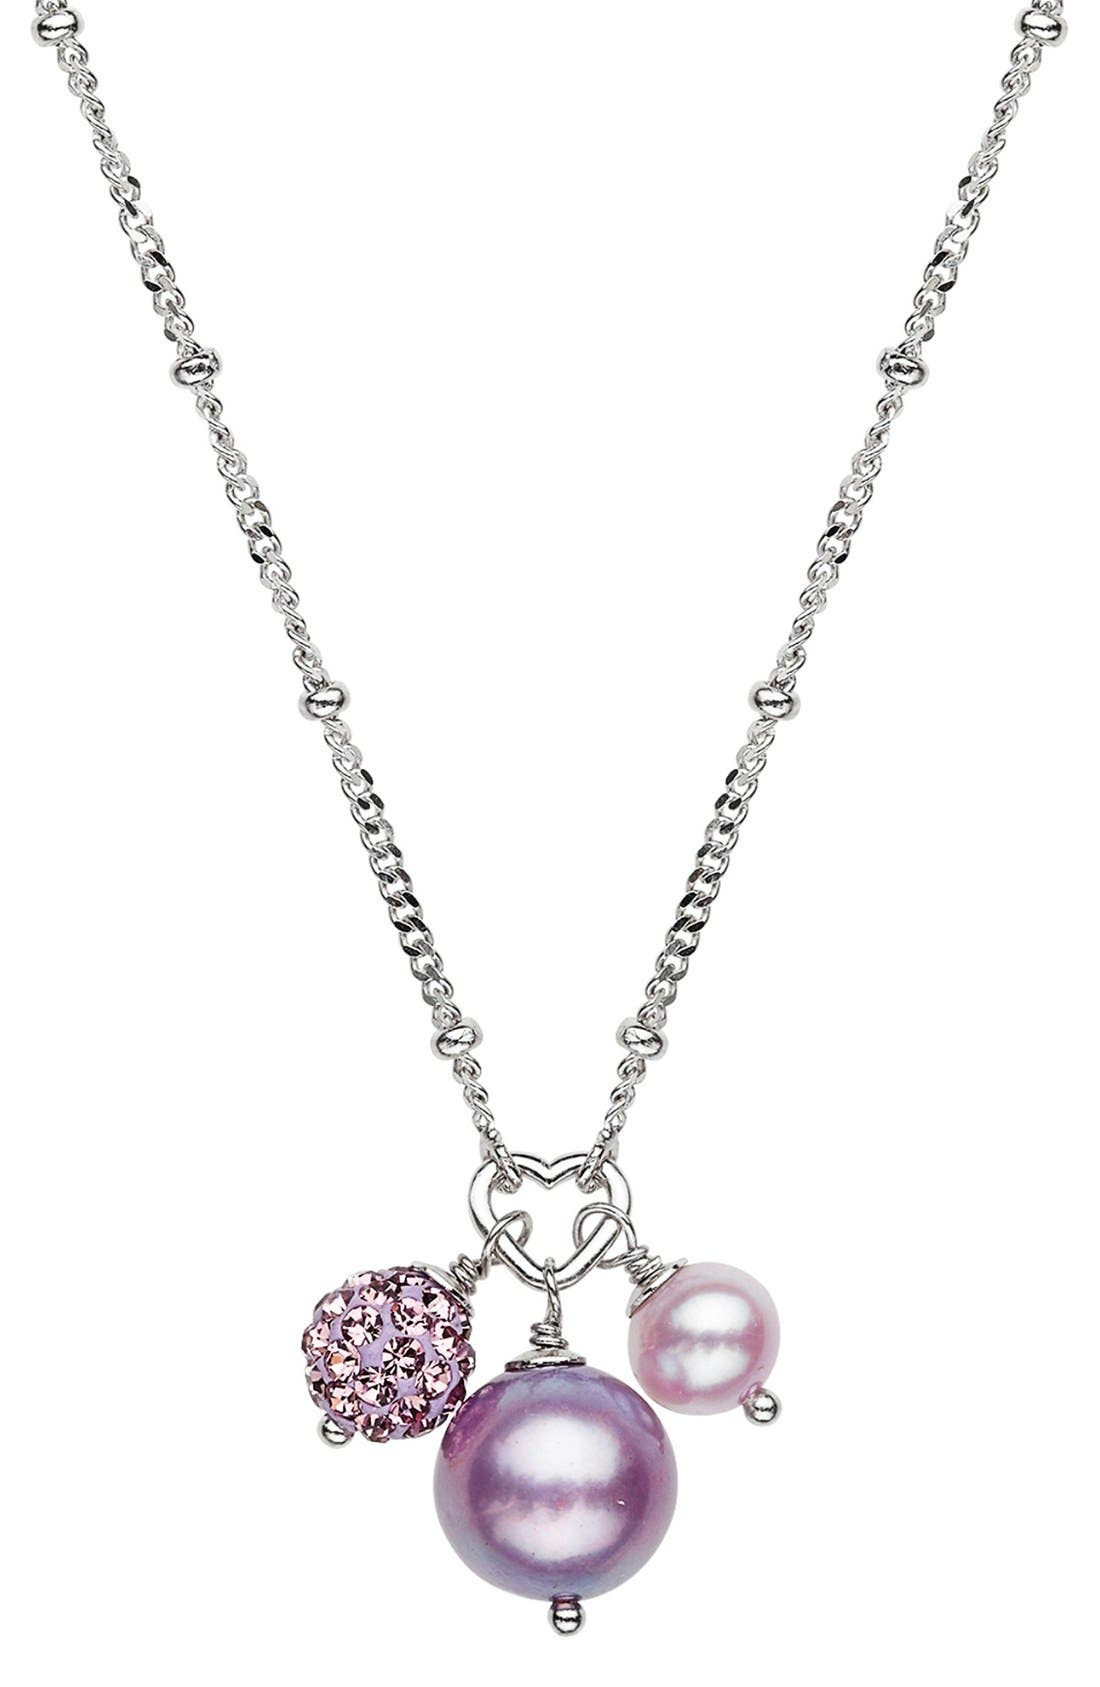 Main Image - HONORA Freshwater Pearl & Crystal Necklace (Girls)